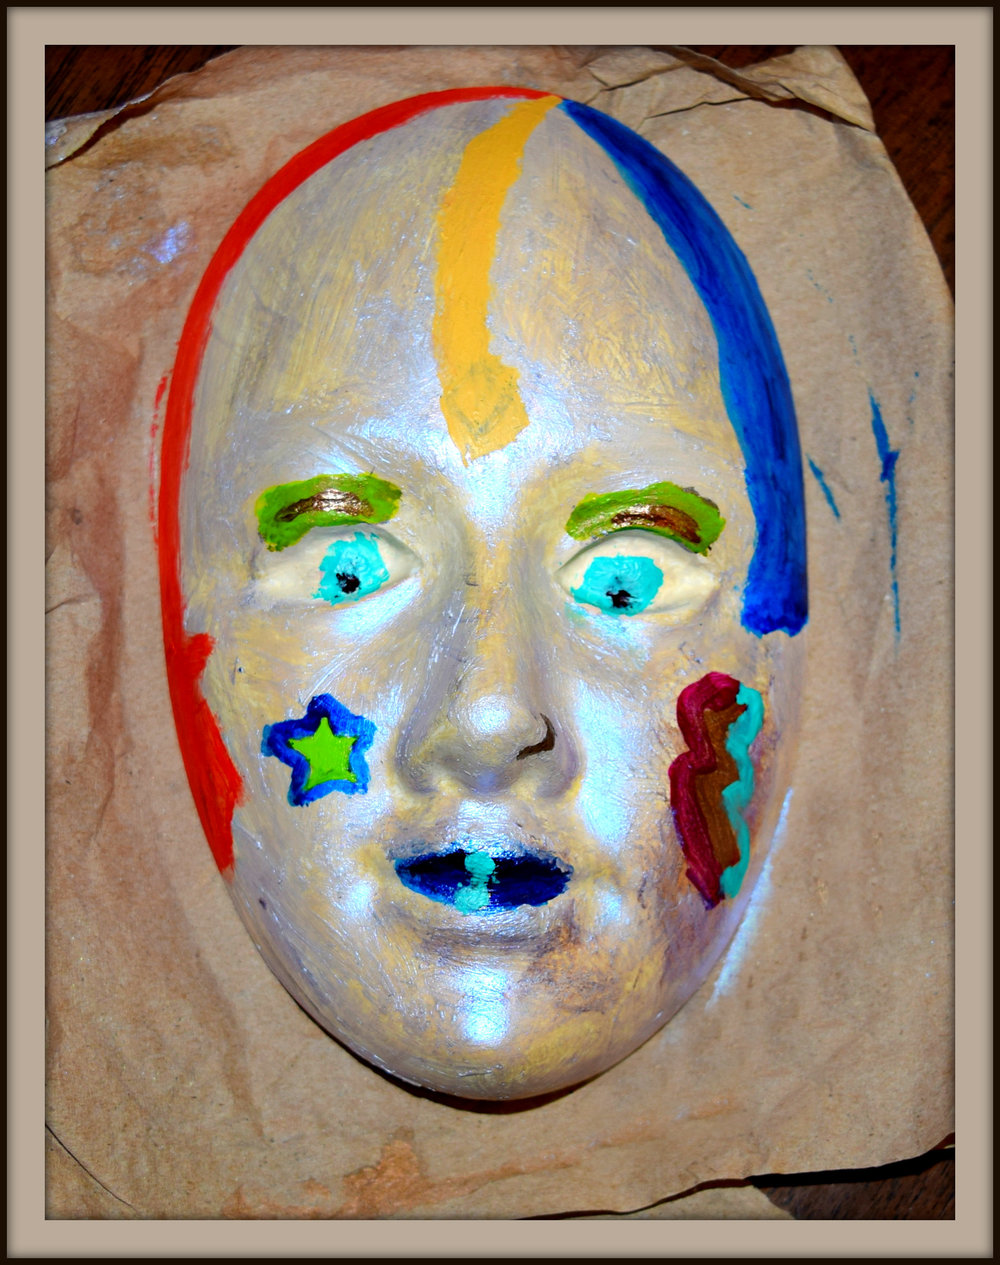 Theatre Mask Susan Nevers Paint on plaster of Paris